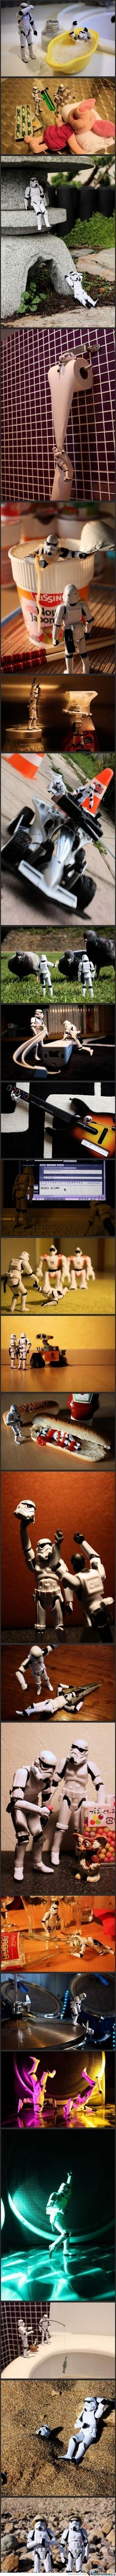 A day in the life of some storm troopers